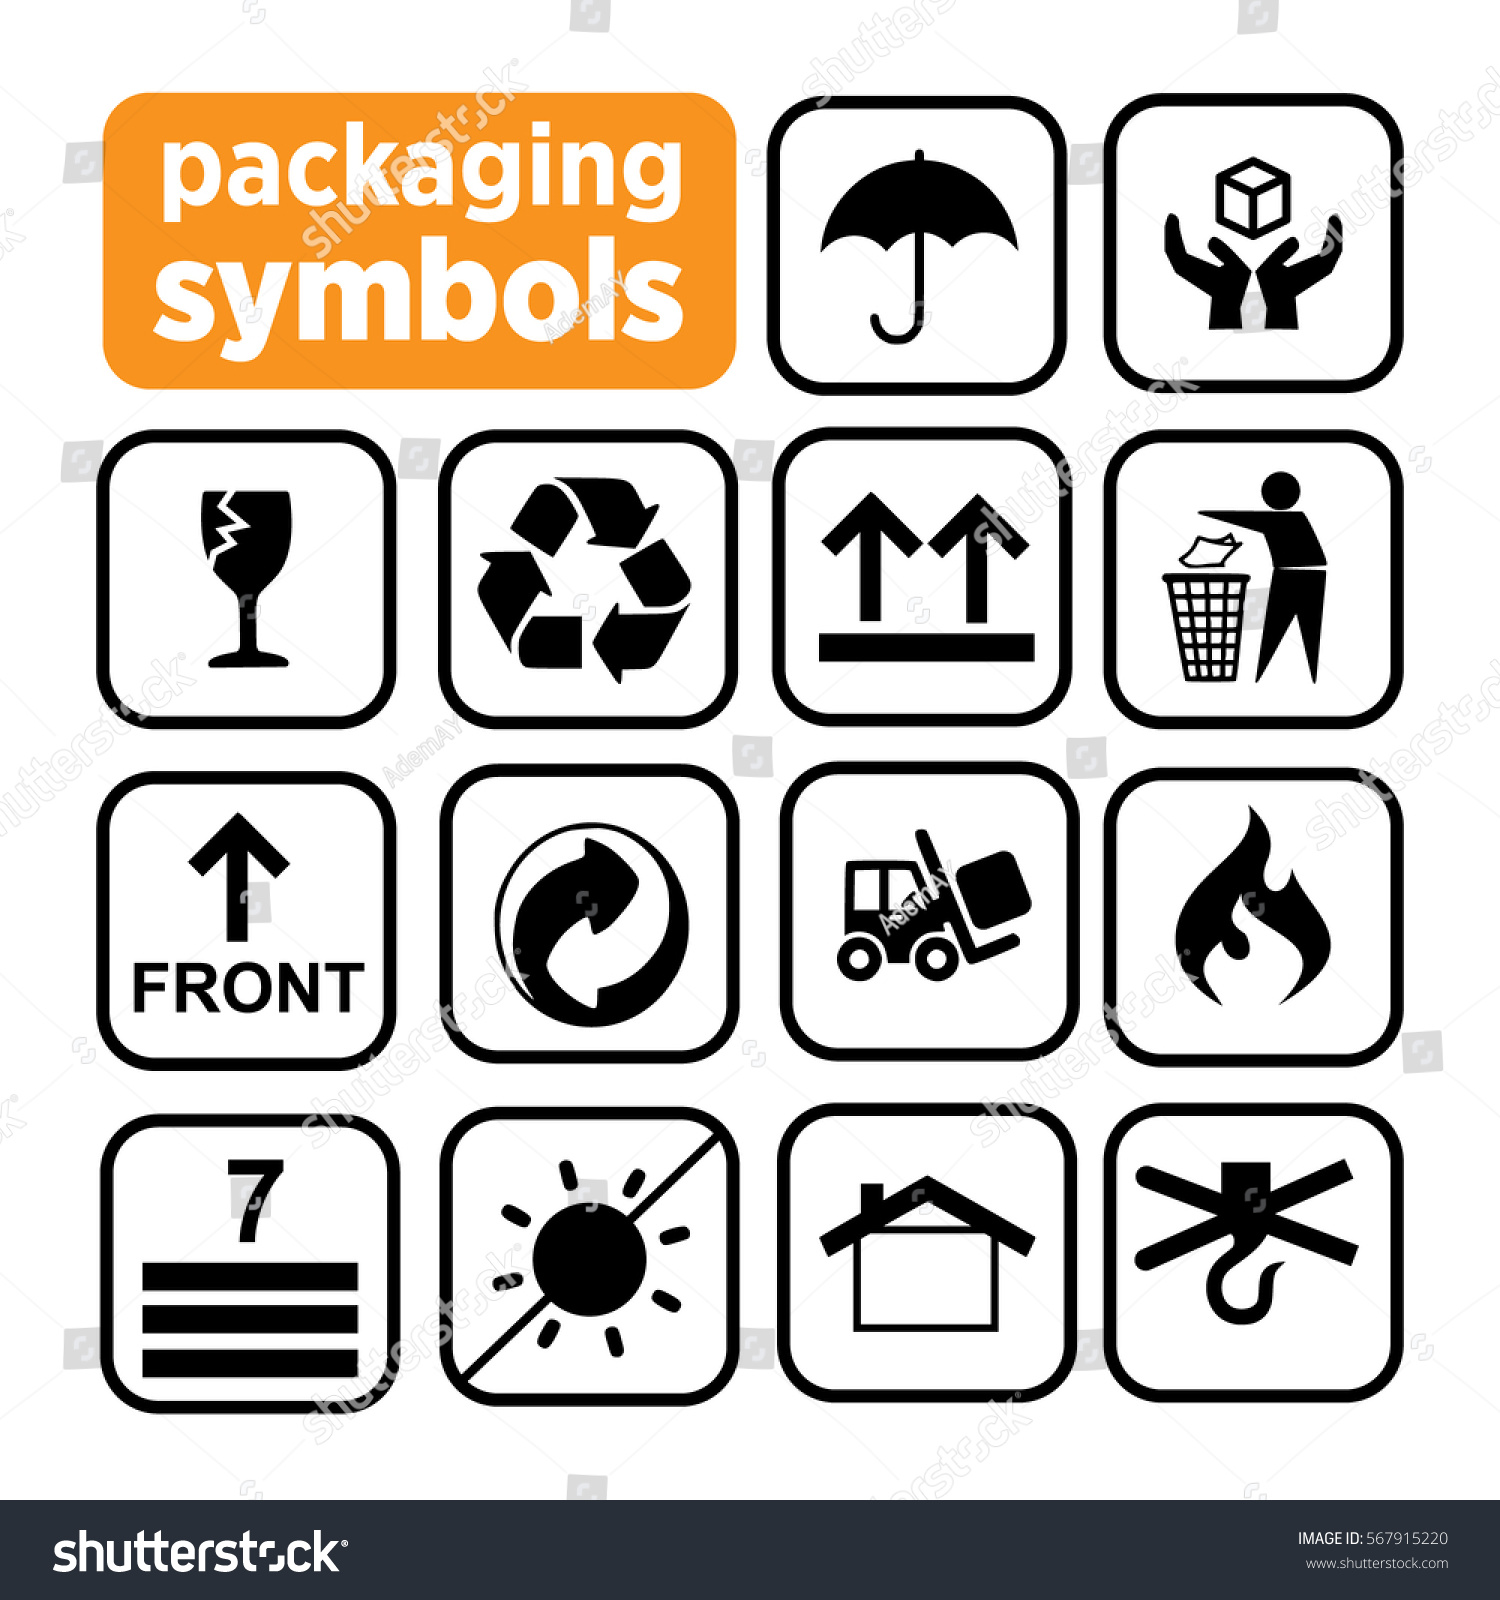 Food packaging symbols gallery symbol and sign ideas packaging symbols recycling icons waste recycling stock vector packaging symbols recycling icons waste recycling buycottarizona gallery buycottarizona Choice Image